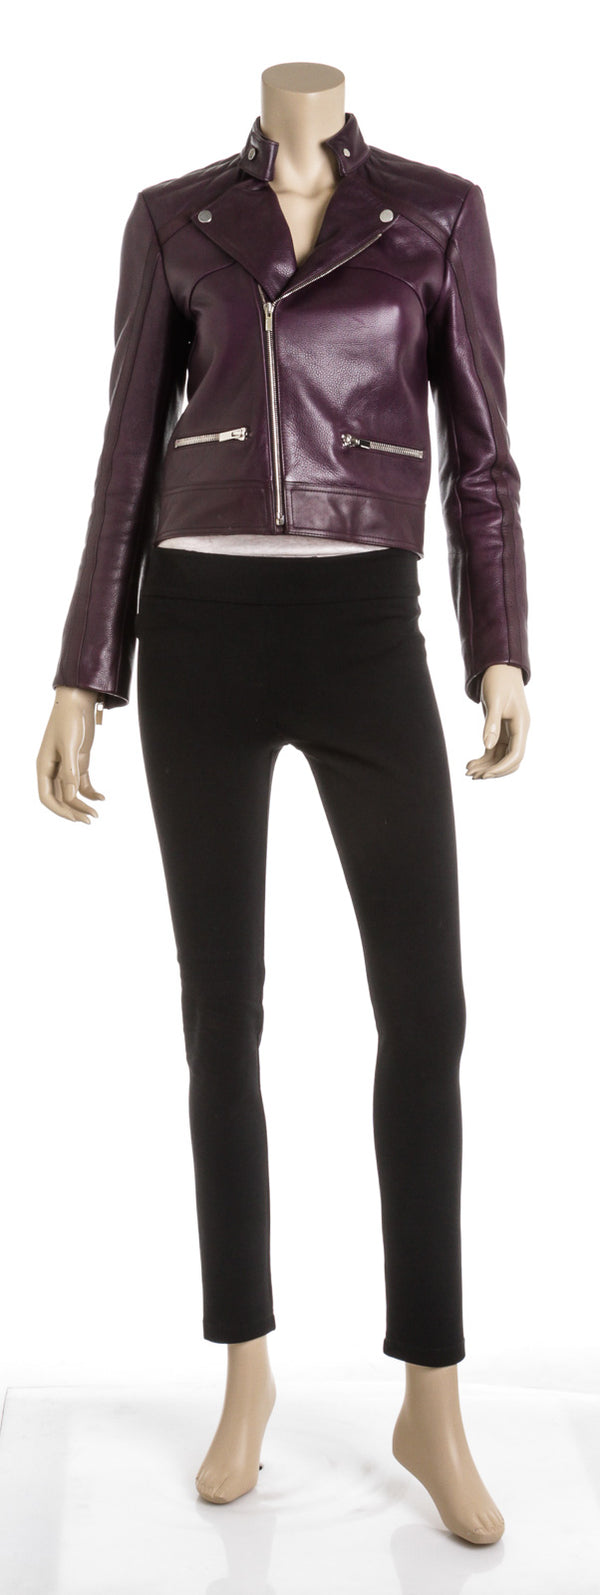 Balenciaga Purple Leather Moto Jacket (Size 36)